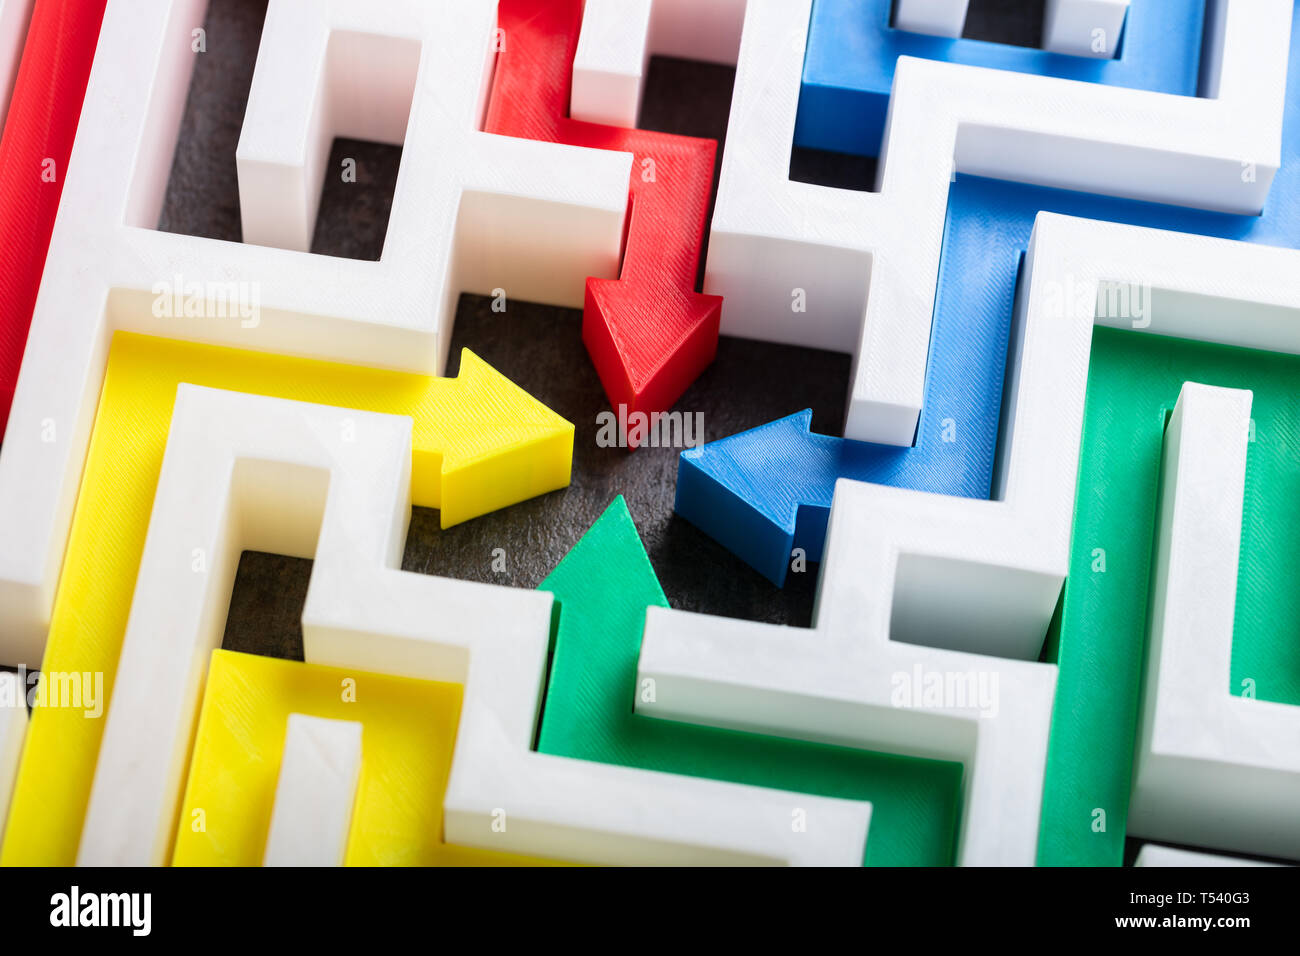 An Elevated View Of Multi Colored Arrows In The Center Of White Maze - Stock Image